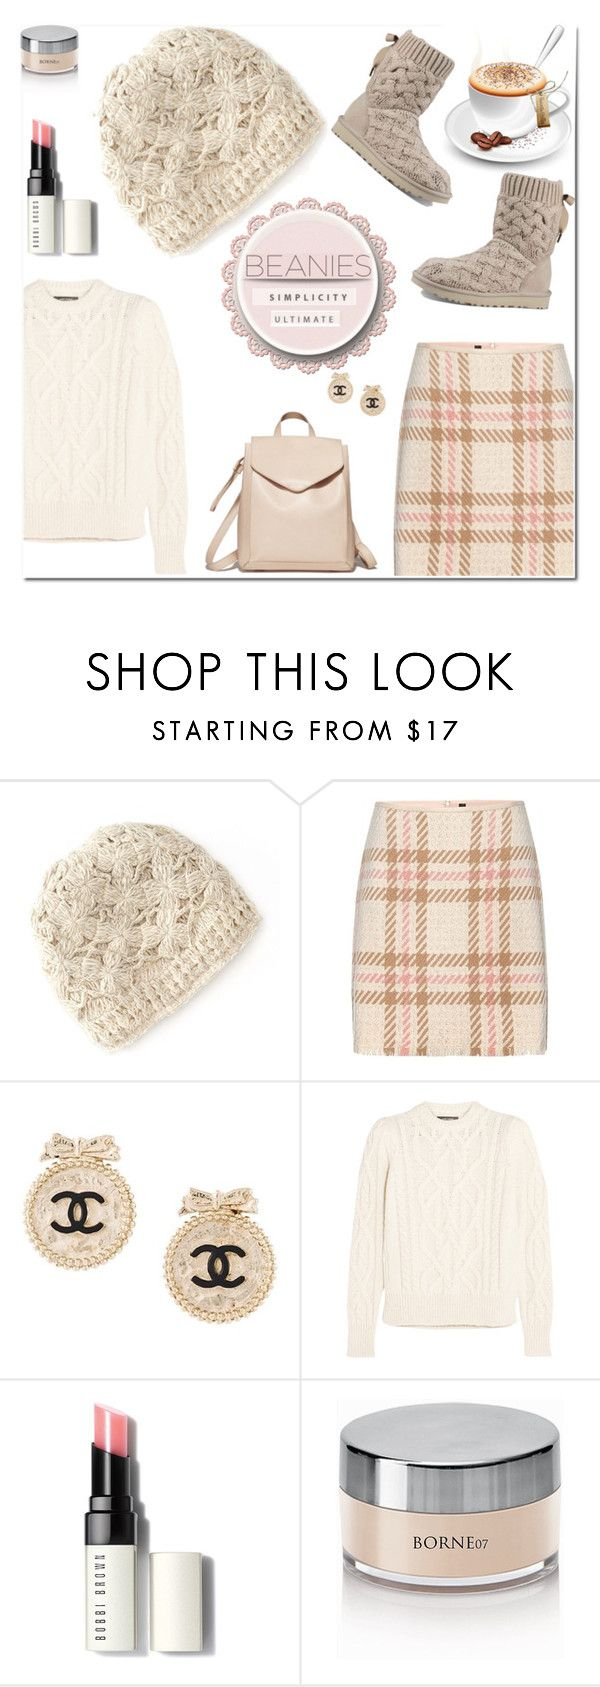 """🎀 #543 #beanies"" by wonderful-paradisaical ❤ liked on Polyvore featuring SIJJL, MARC CAIN, Loeffler Randall, Chanel, Isabel Marant, Bobbi Brown Cosmetics, UGG, trending, beanies and polyvorecontest"